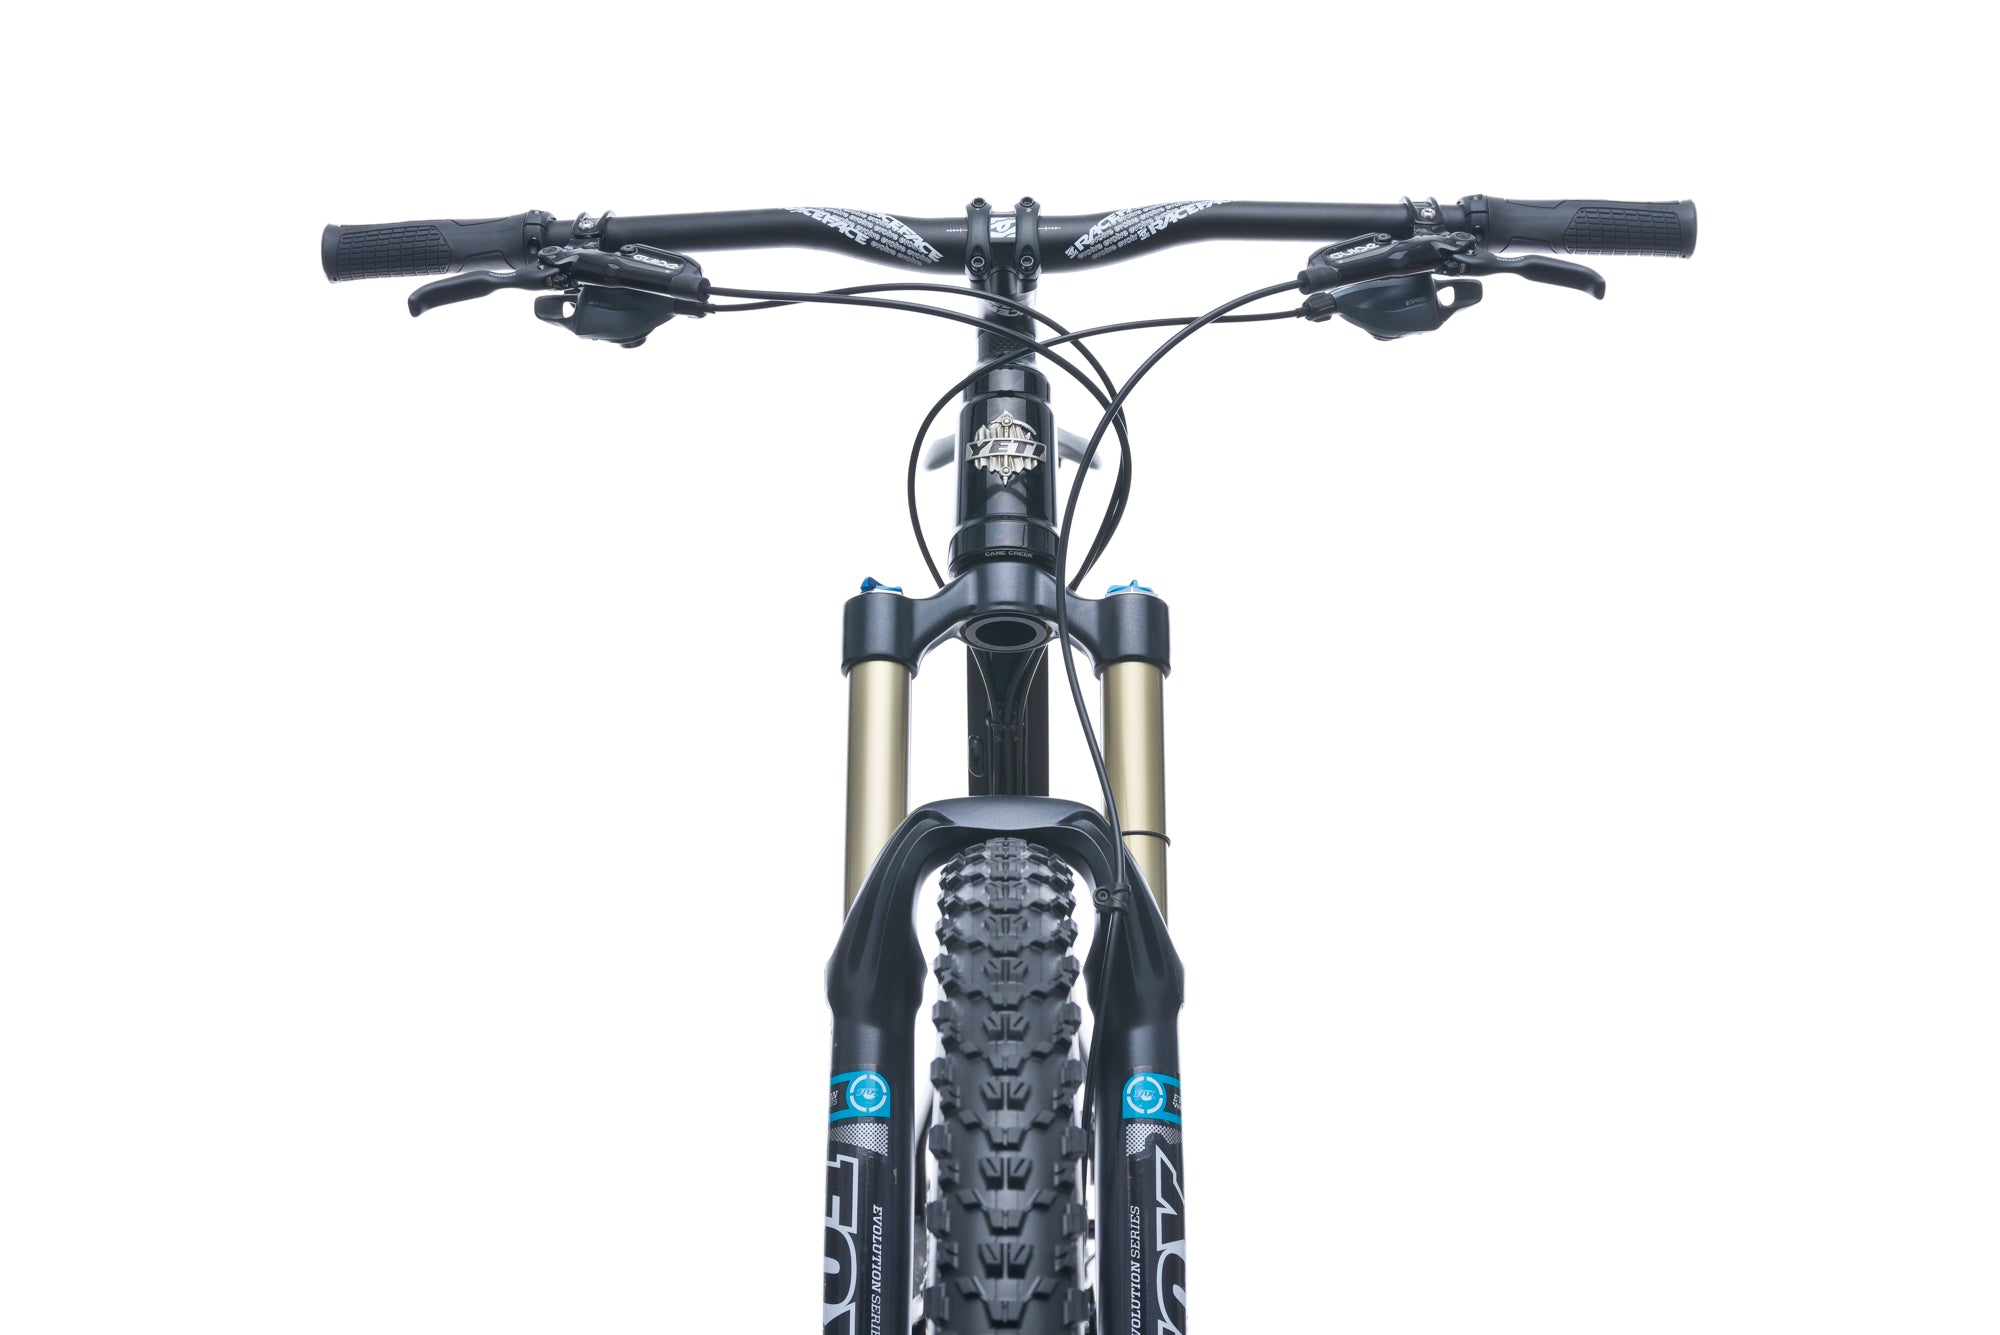 Yeti 575 Enduro Small Bike - 2015 cockpit